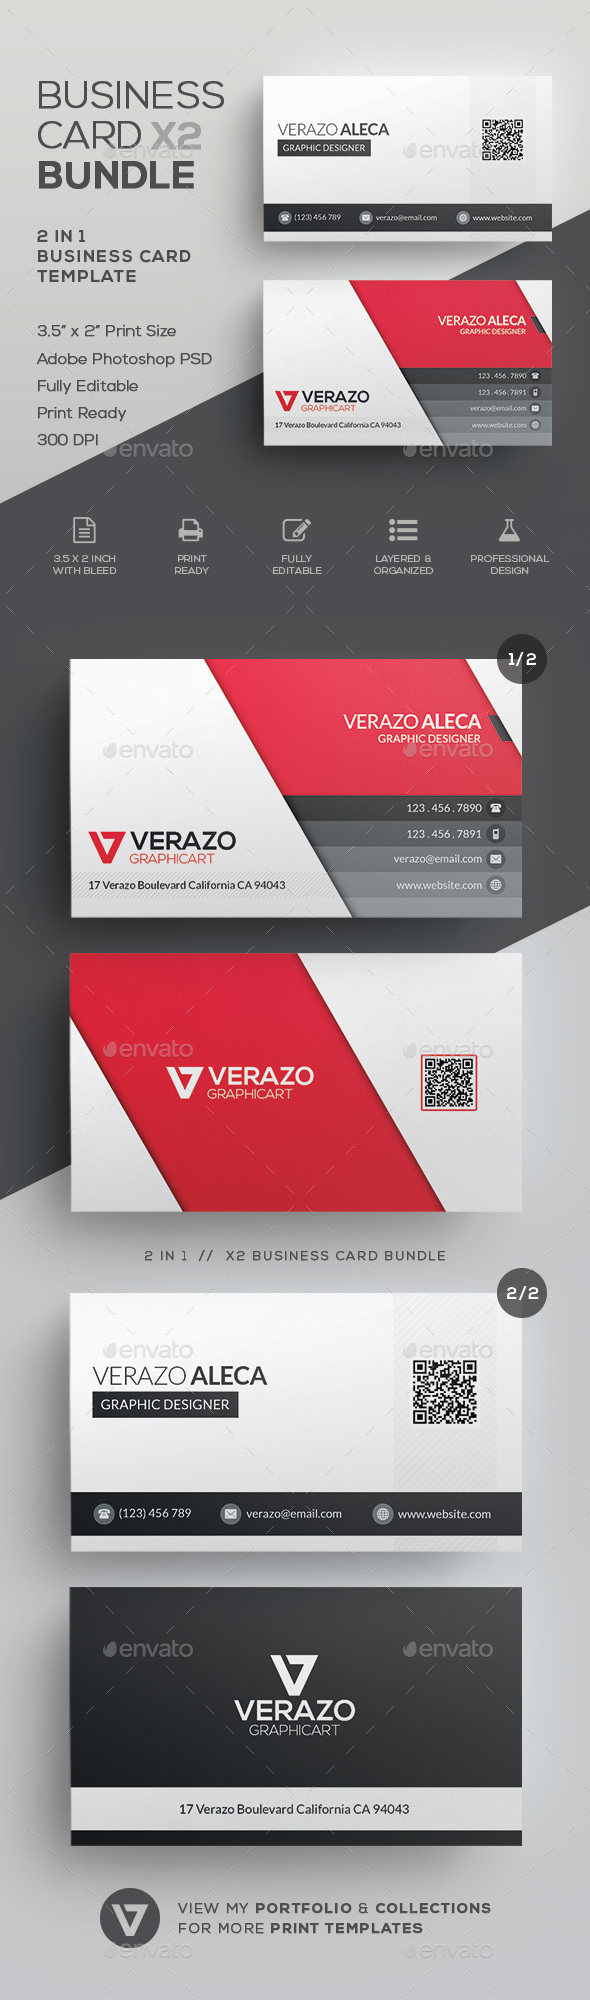 Business Card Bundle 31 - Corporate Business Cards